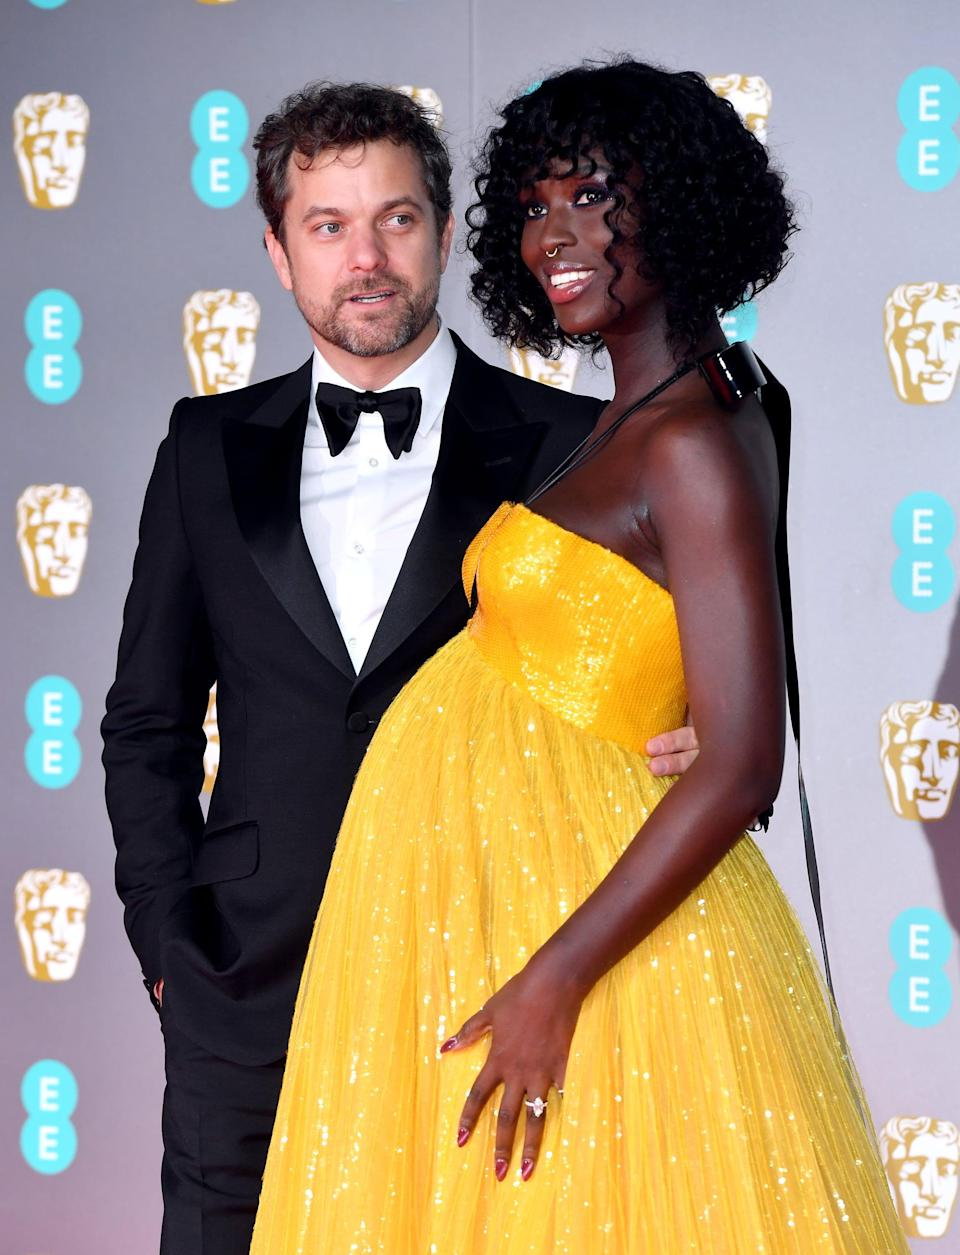 Joshua Jackson and Jodie Turner-Smith attending the 73rd British Academy Film Awards held at the Royal Albert Hall, London. (Photo by Matt Crossick/PA Images via Getty Images)